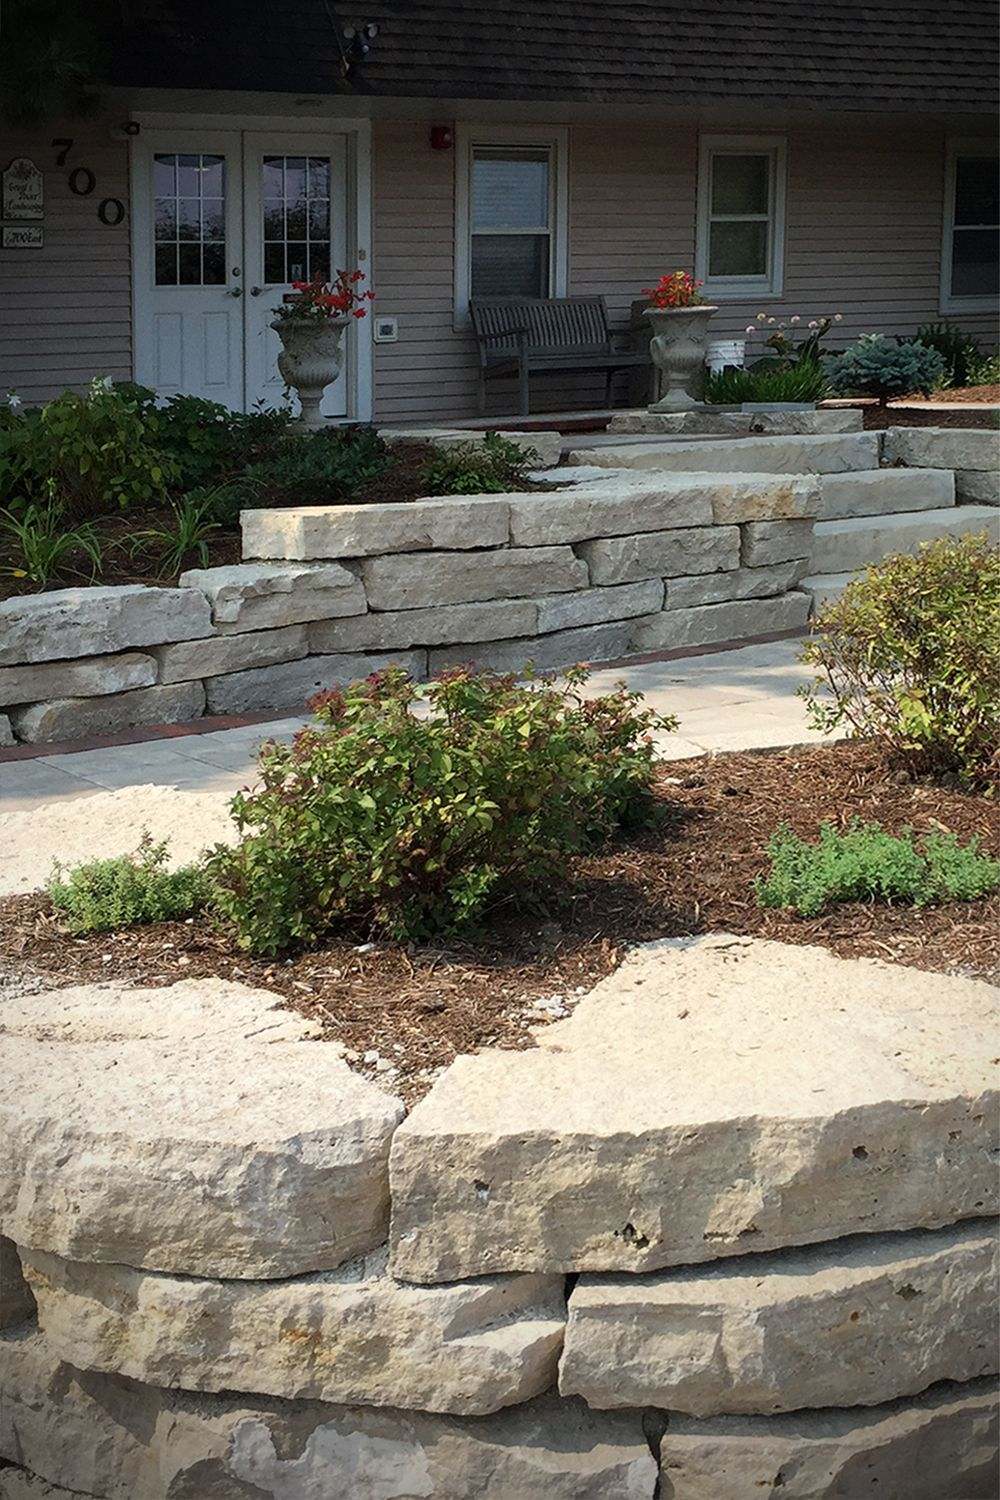 Home Landscape Retaining Wall Stone Design Fond Du Lac Outcroppings Backyard Landscaping Landscape Stone Front Yard Landscaping